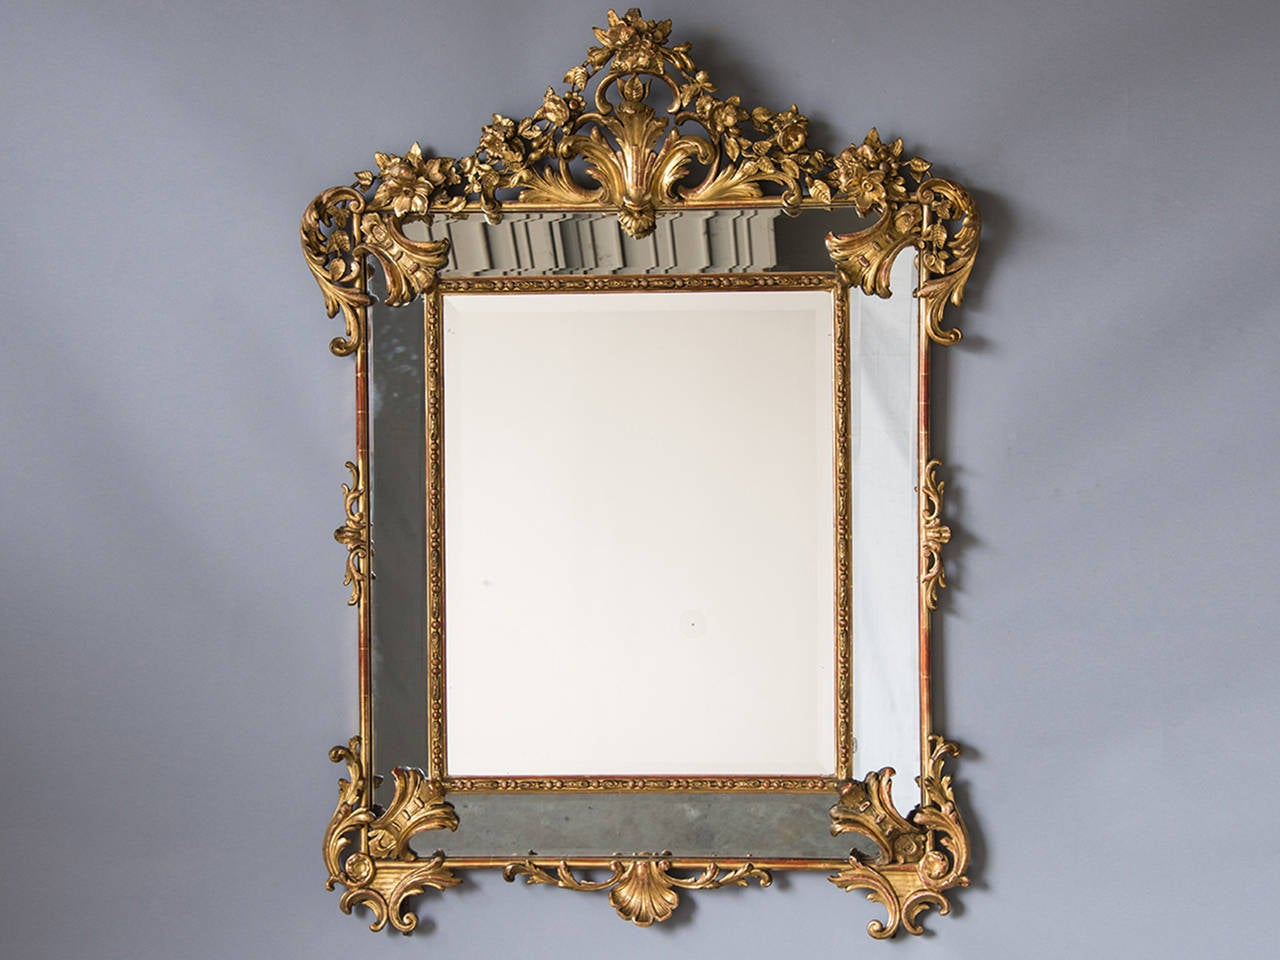 Bold Antique French Régence Style Pareclose Gold Leaf Mirror, circa 1890 3